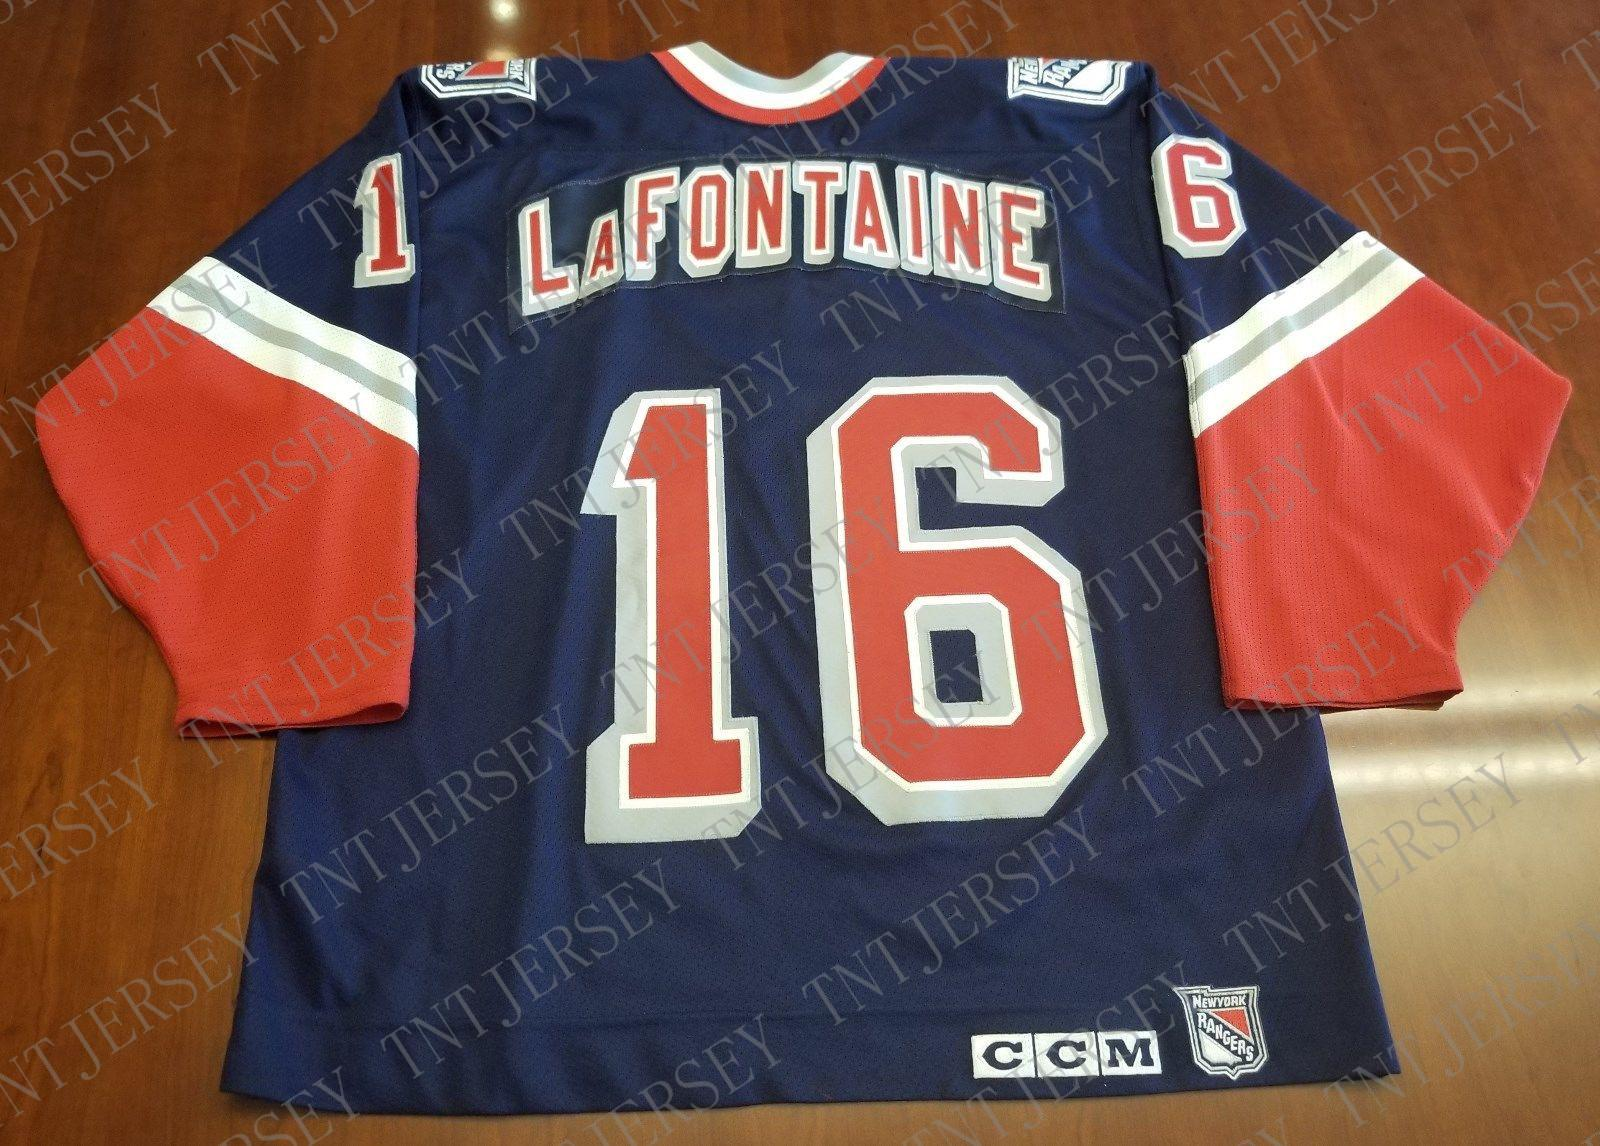 70cfc810a 2019 Cheap Custom Pat LaFontaine Vintage New York Rangers CCM Jersey Lady  Liberty Stitched Retro Hockey Jersey XS 5XL From Tntjersey